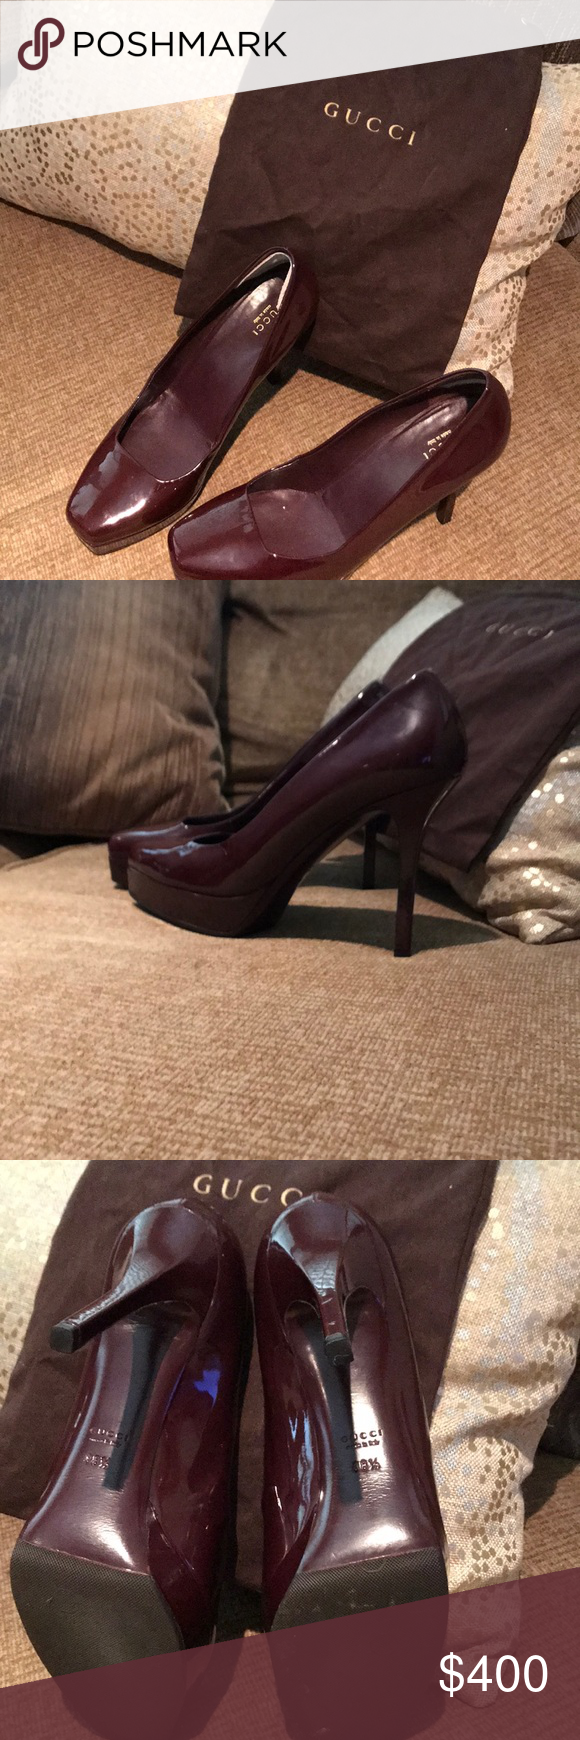 9e2403001 Gucci pumps size 38 1/2 8 Authentic Gucci plum pumps Brand new upper heel  Cushing removed in excellent conduction. Gucci Shoes Heels